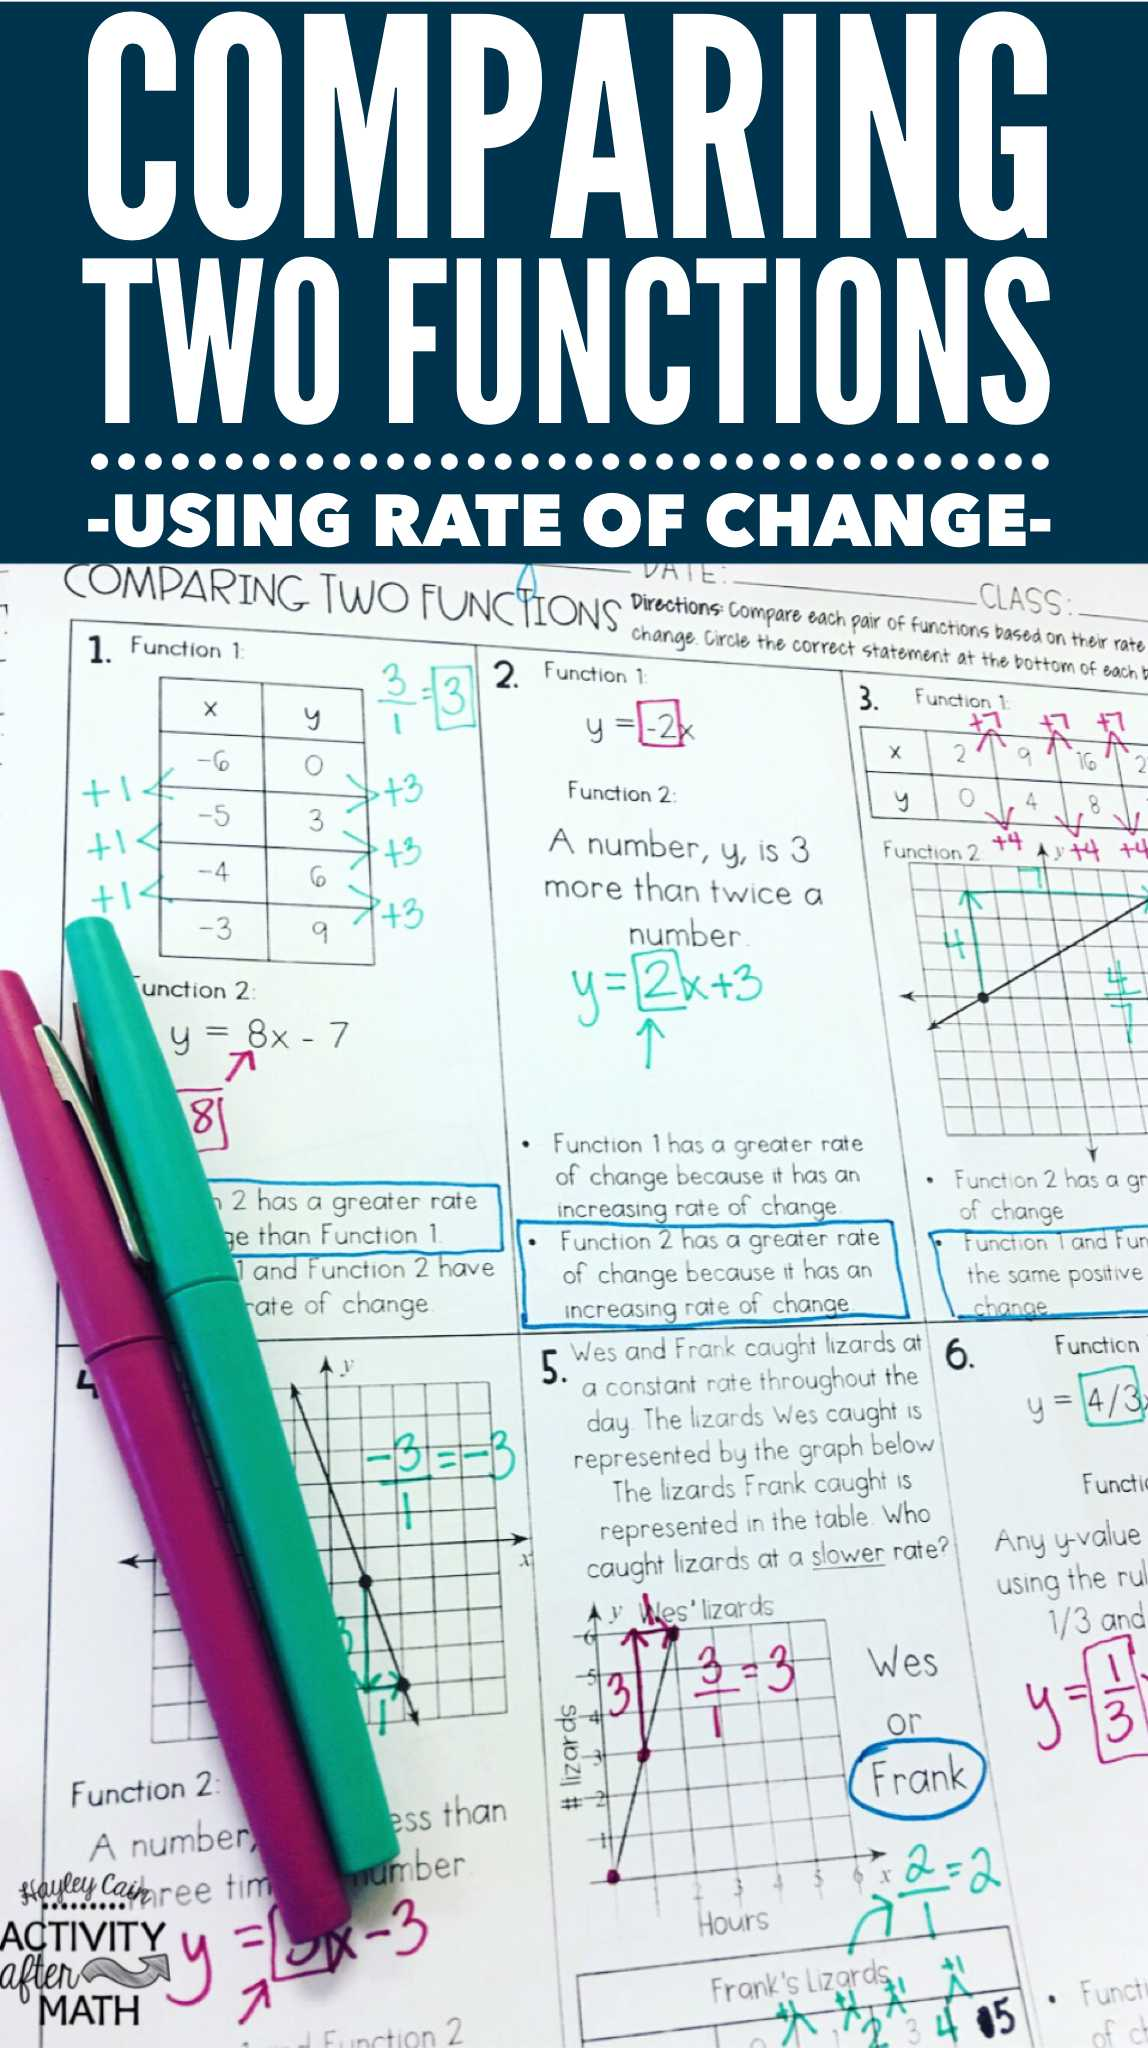 Radicals and Rational Exponents Worksheet Answers together with Paring Two Functions by Rate Of Change Practice Worksheet